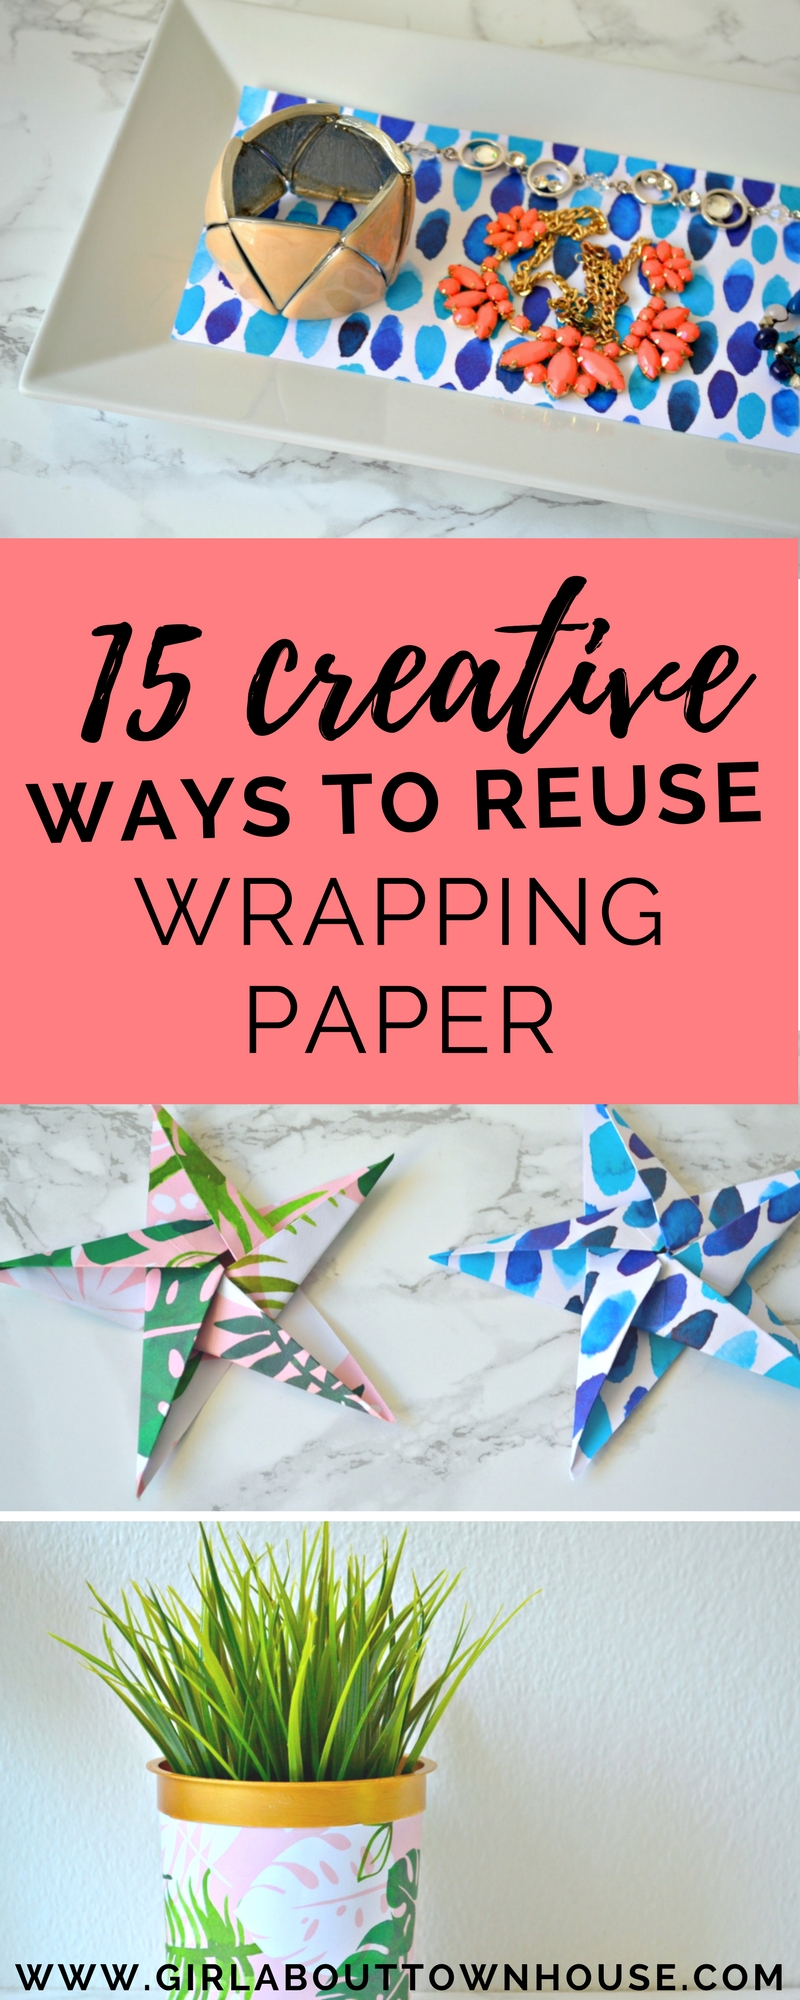 15 fun and frugal ideas for reusing wrapping paper. From craft projects to storage solutions, here's 15 good reasons why you should never throw pretty wrapping paper away. If you love upcyling, DIY ideas and saving money, this is the perfect post for you!